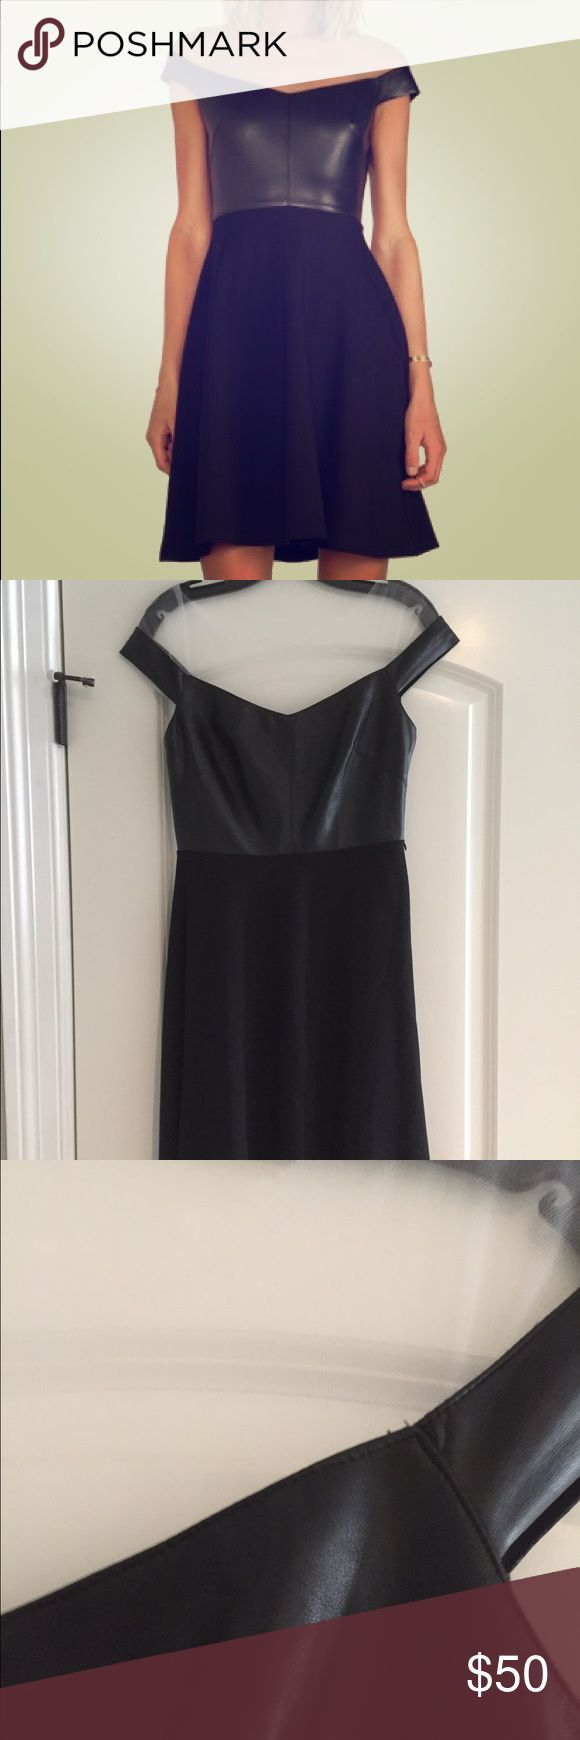 NWOT Bailey 44 endorphin dress sz medium The stress is so cute. It has a leather like top with tulle overlay on the shoulders. It is a size medium. Bailey 44 Dresses